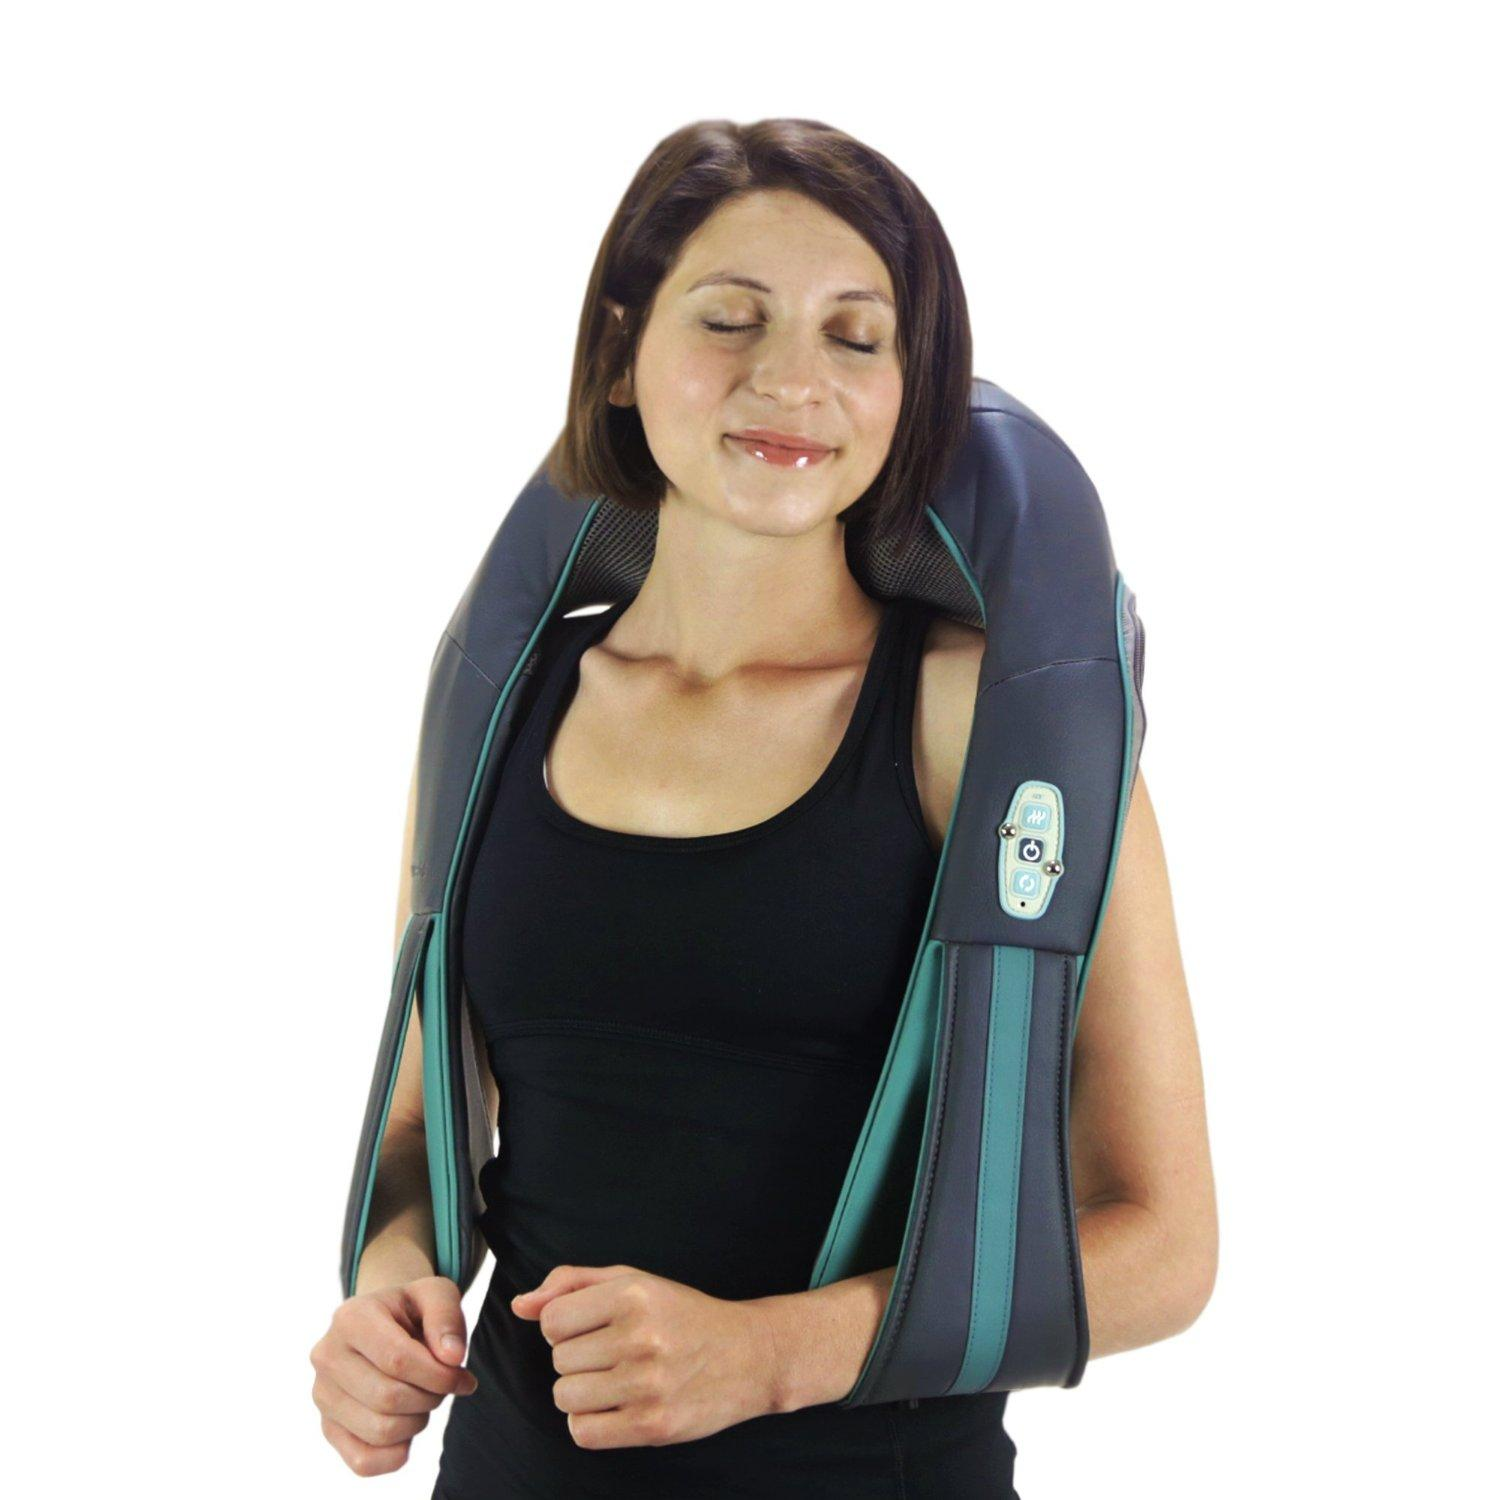 $89.99 truMedic Instashiatsu Plus Neck and Shoulder Massager Sale @ Amazon.com